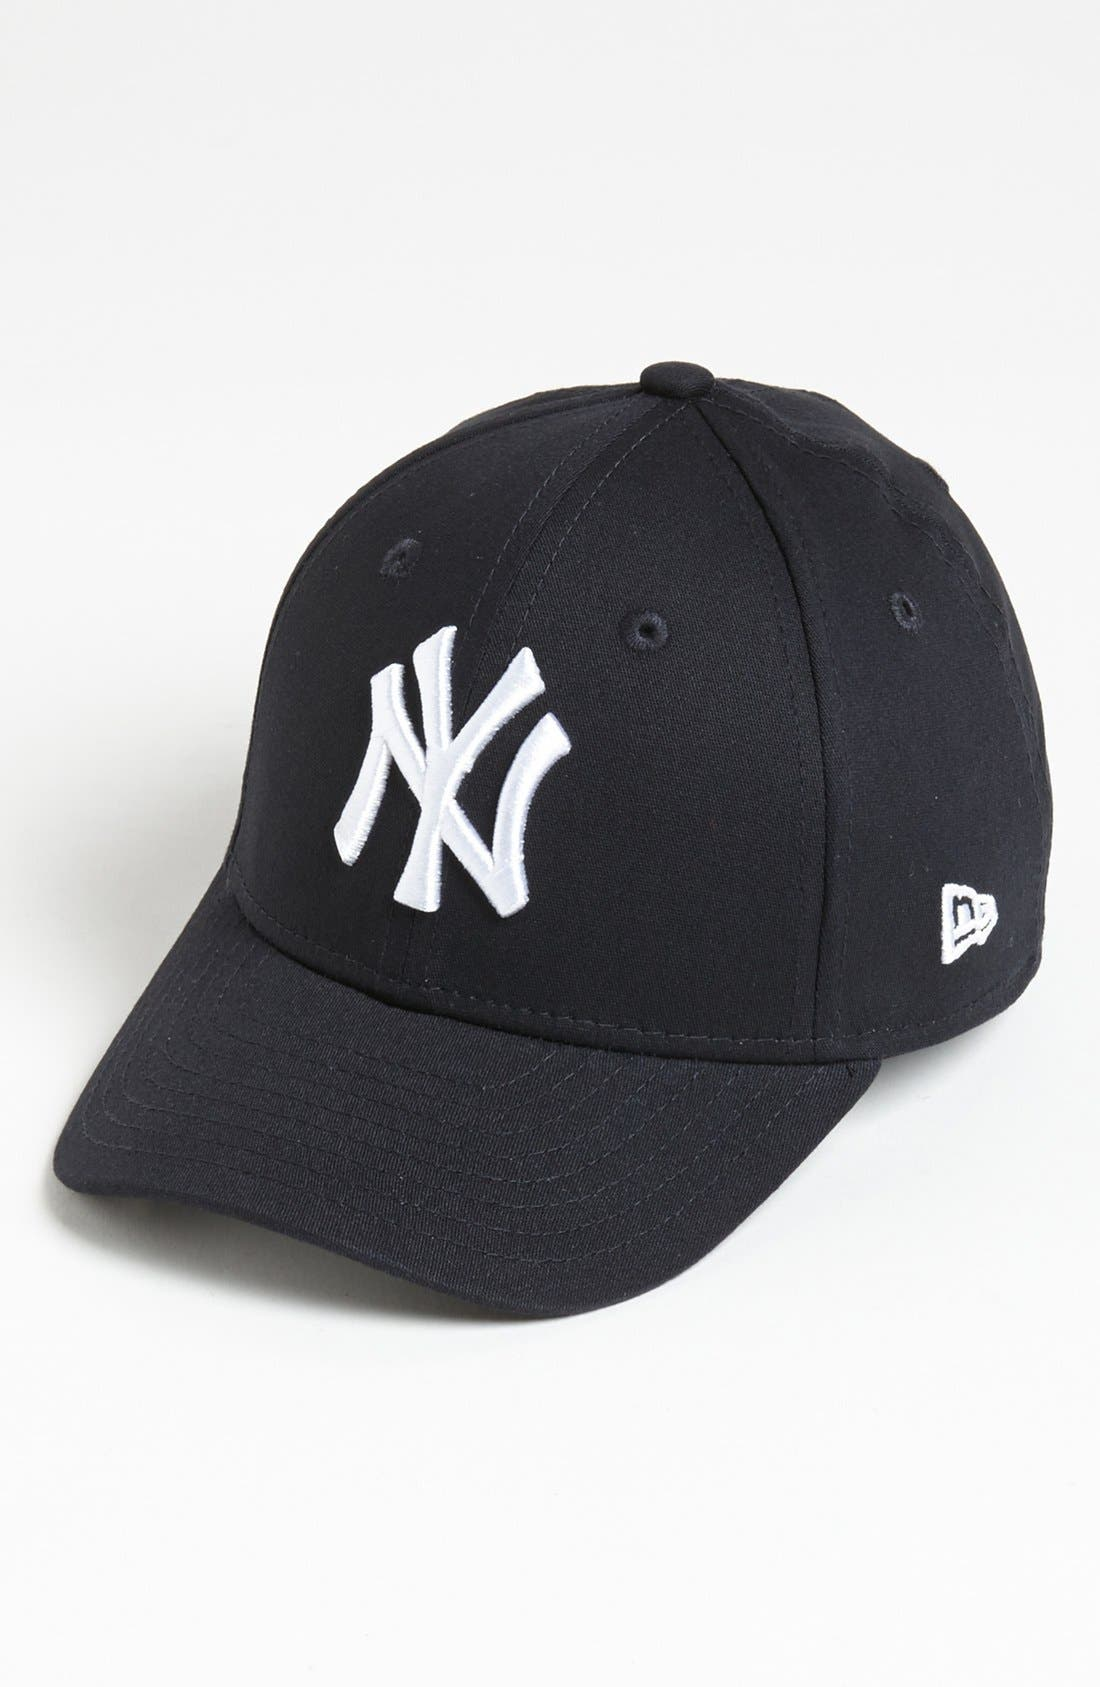 Alternate Image 1 Selected - New Era Cap 'New York Yankees - Tie Breaker' Baseball Cap (Big Boys)